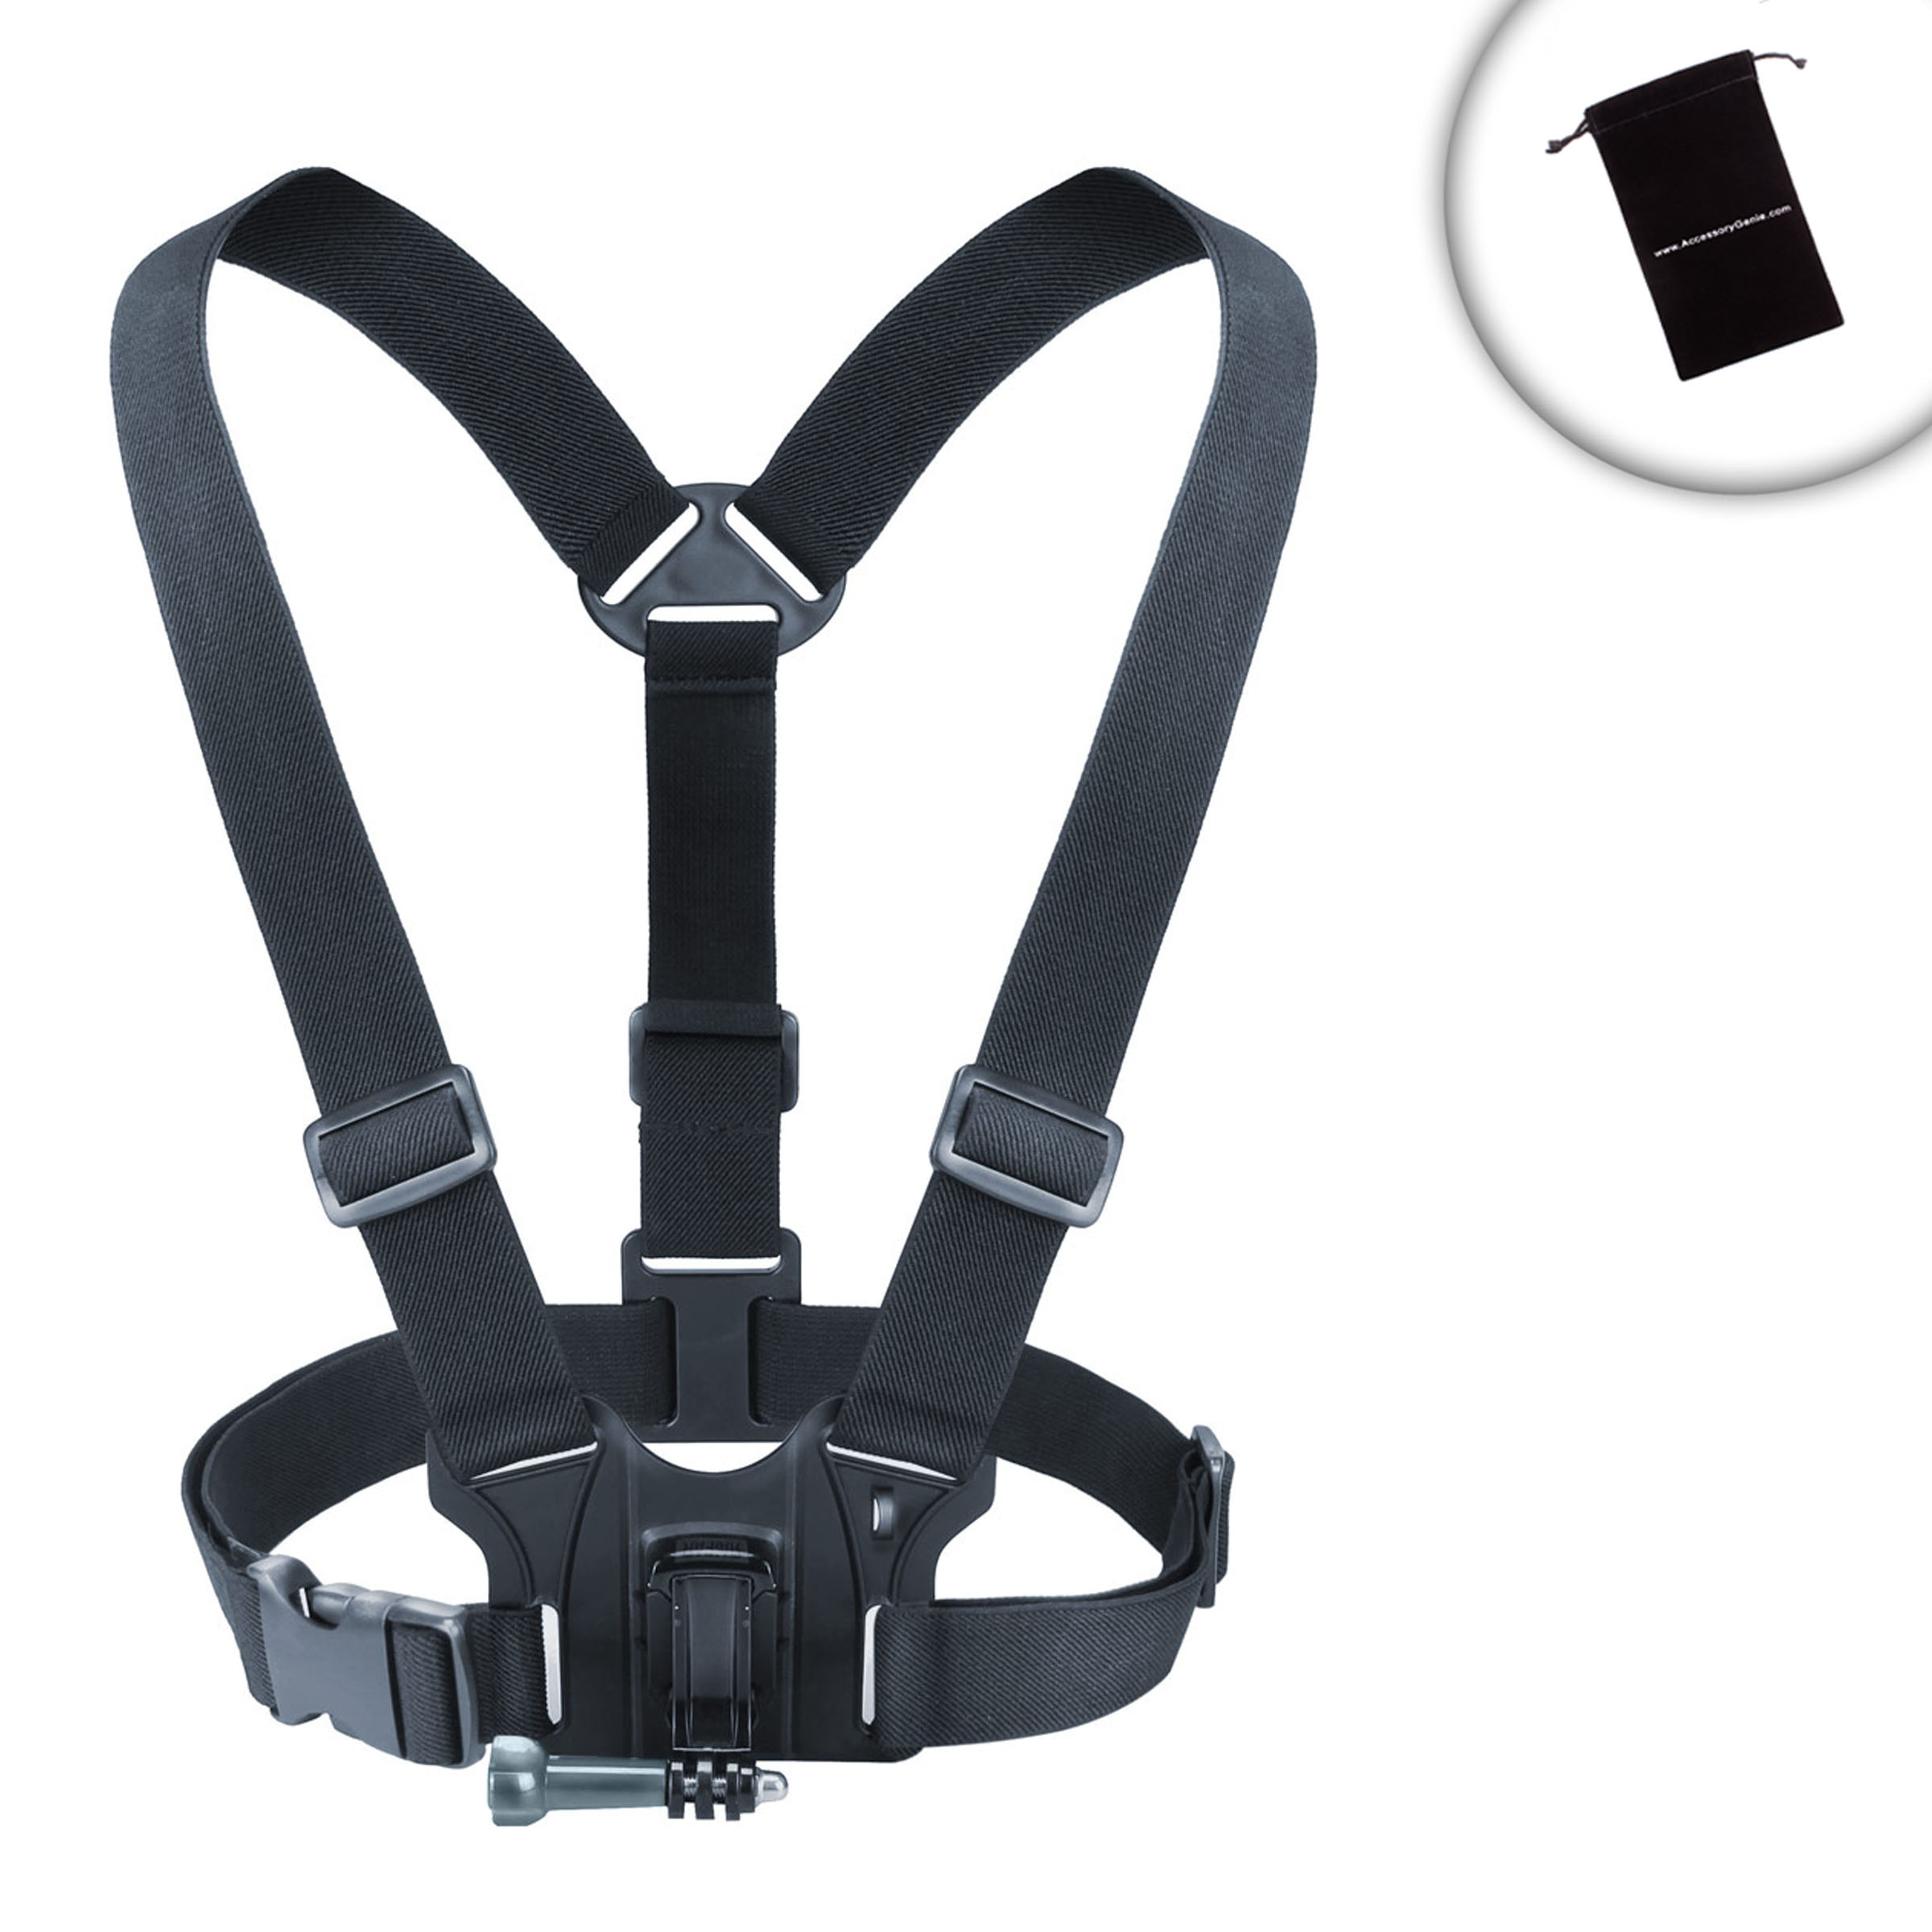 Camera Straps Camera Clips - Digital Camera Warehouse